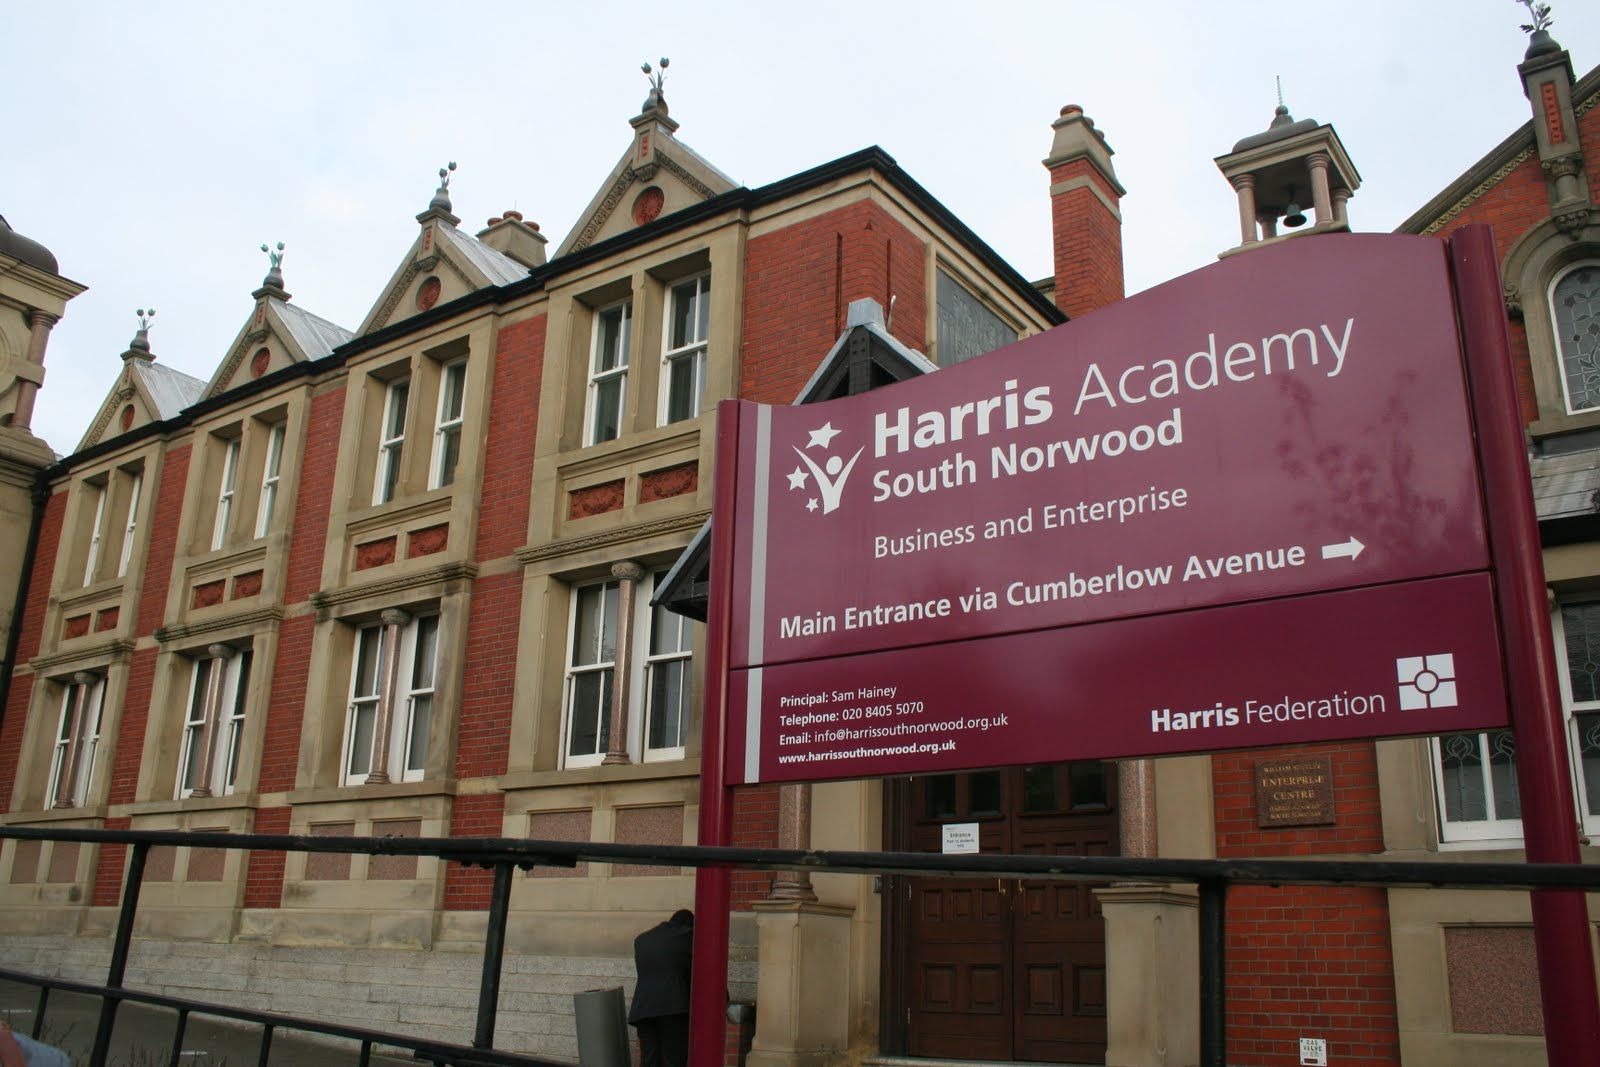 Harris_Academy_South_Norwood